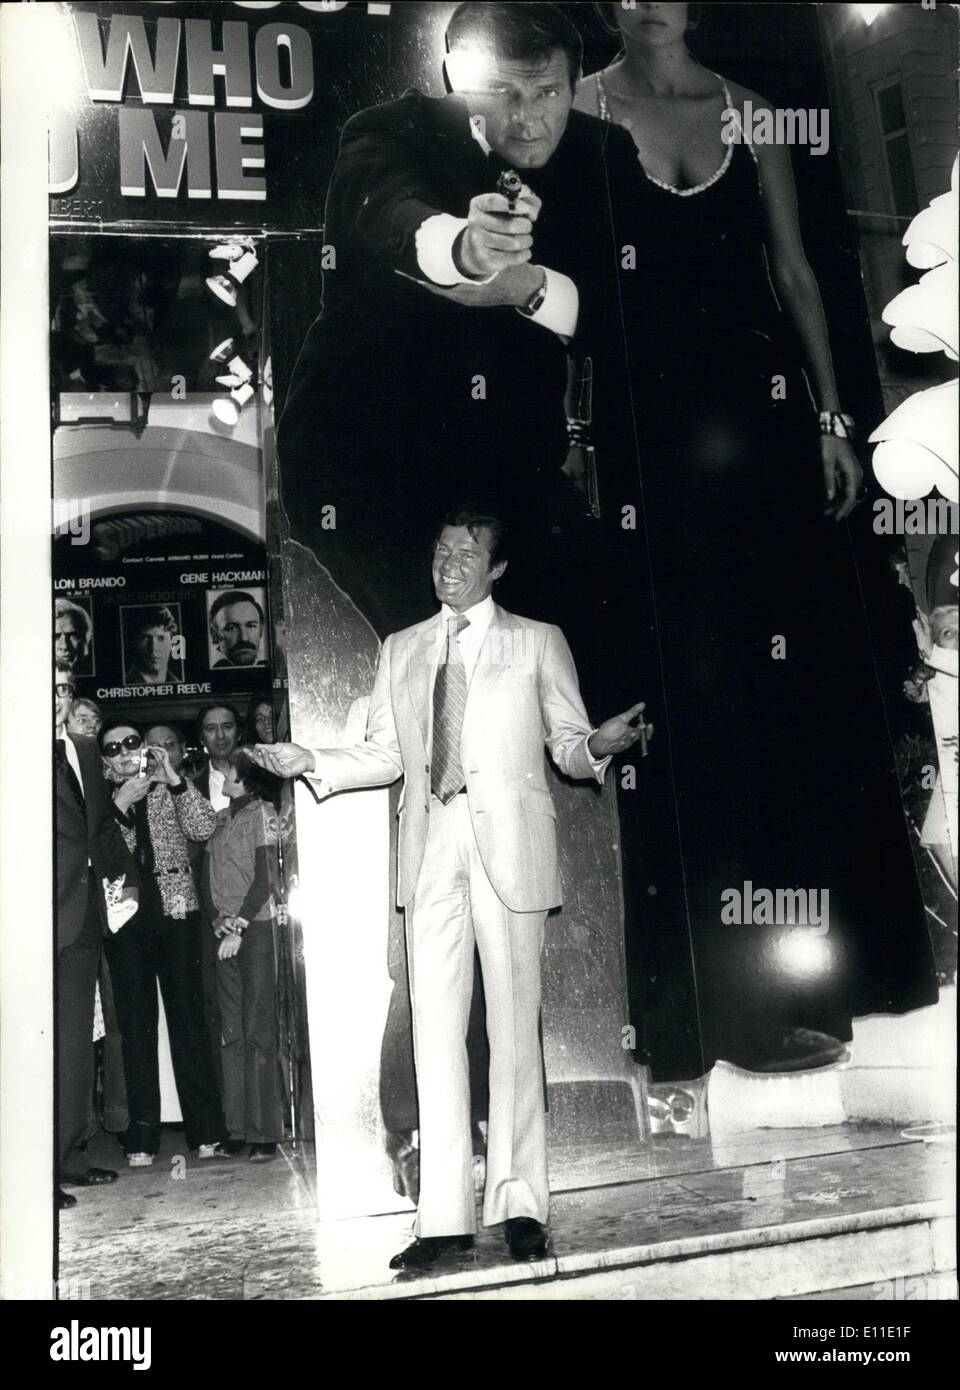 May 23, 1977 - Roger Moore, whose alias is James Bond 007, is currently in Cannes where his latest movie ''The Spy Who Loved Me'' will be exclusively shown as part of the International Film Festival. Picture: Roger Moore in front of a poster of his latest movie in Cannes. - Stock Image